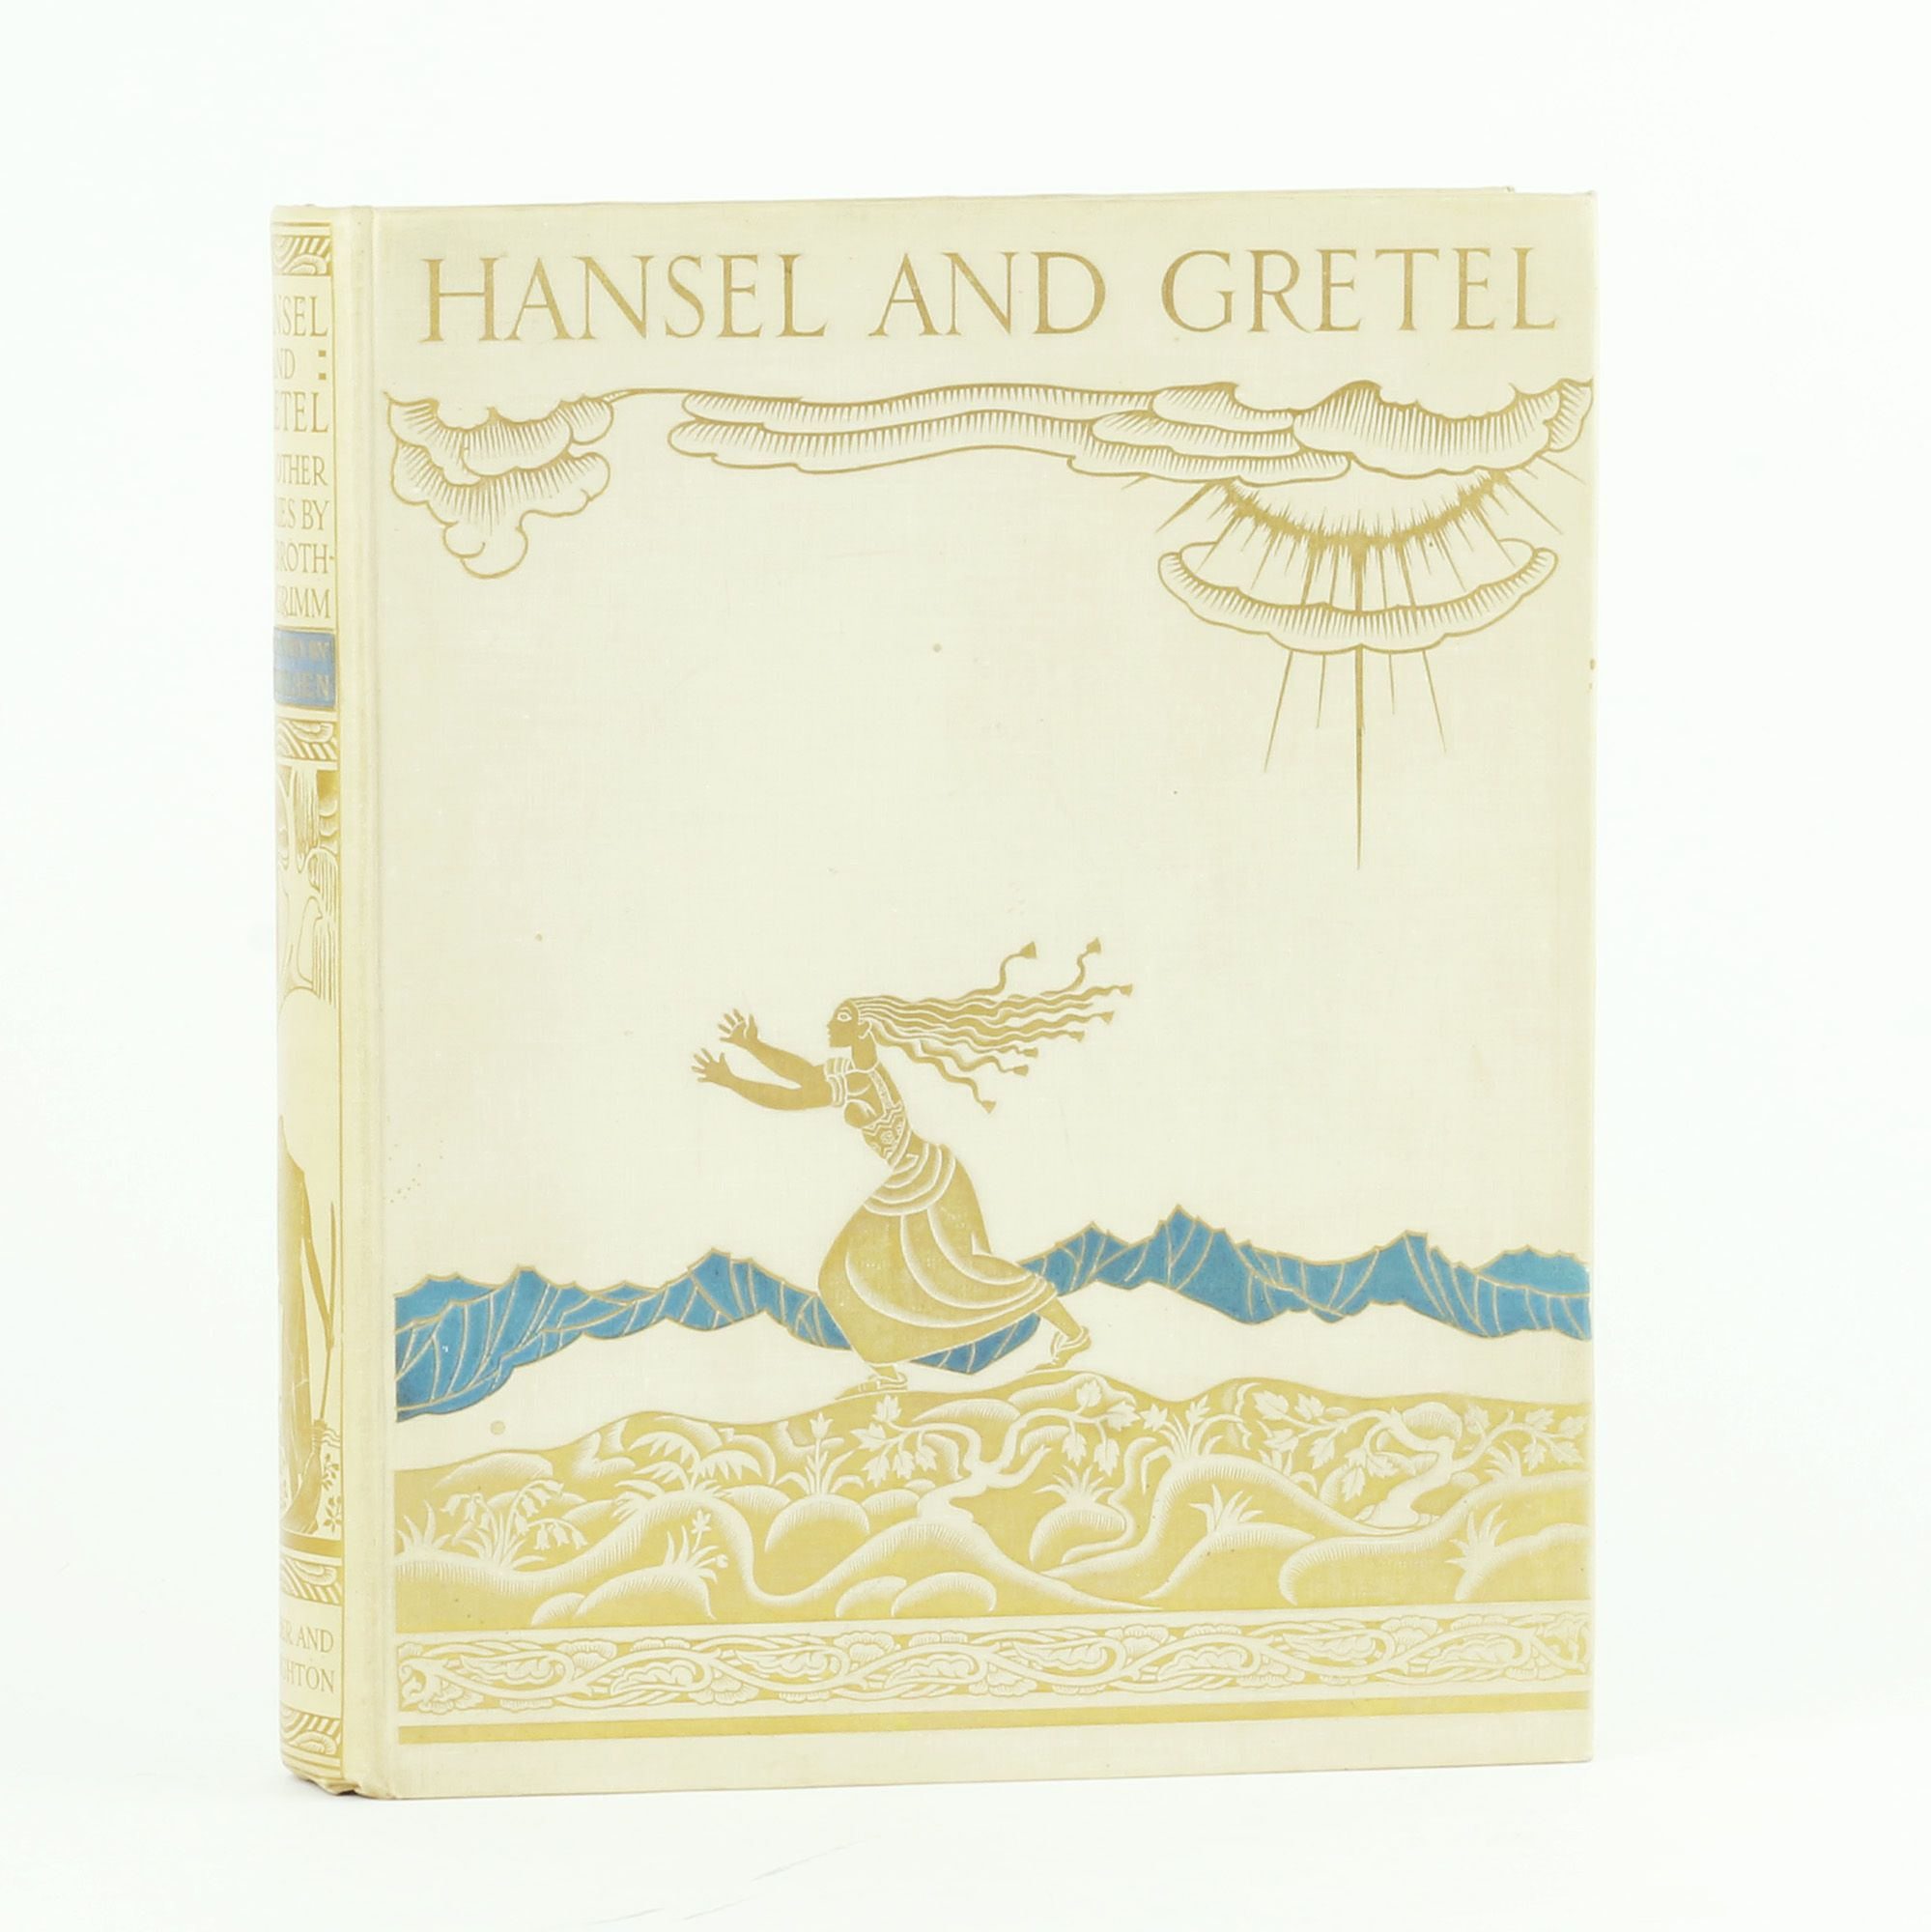 Hansel And Gretel The Brothers Grimm Key Nielsen First Edition Boker Musikk